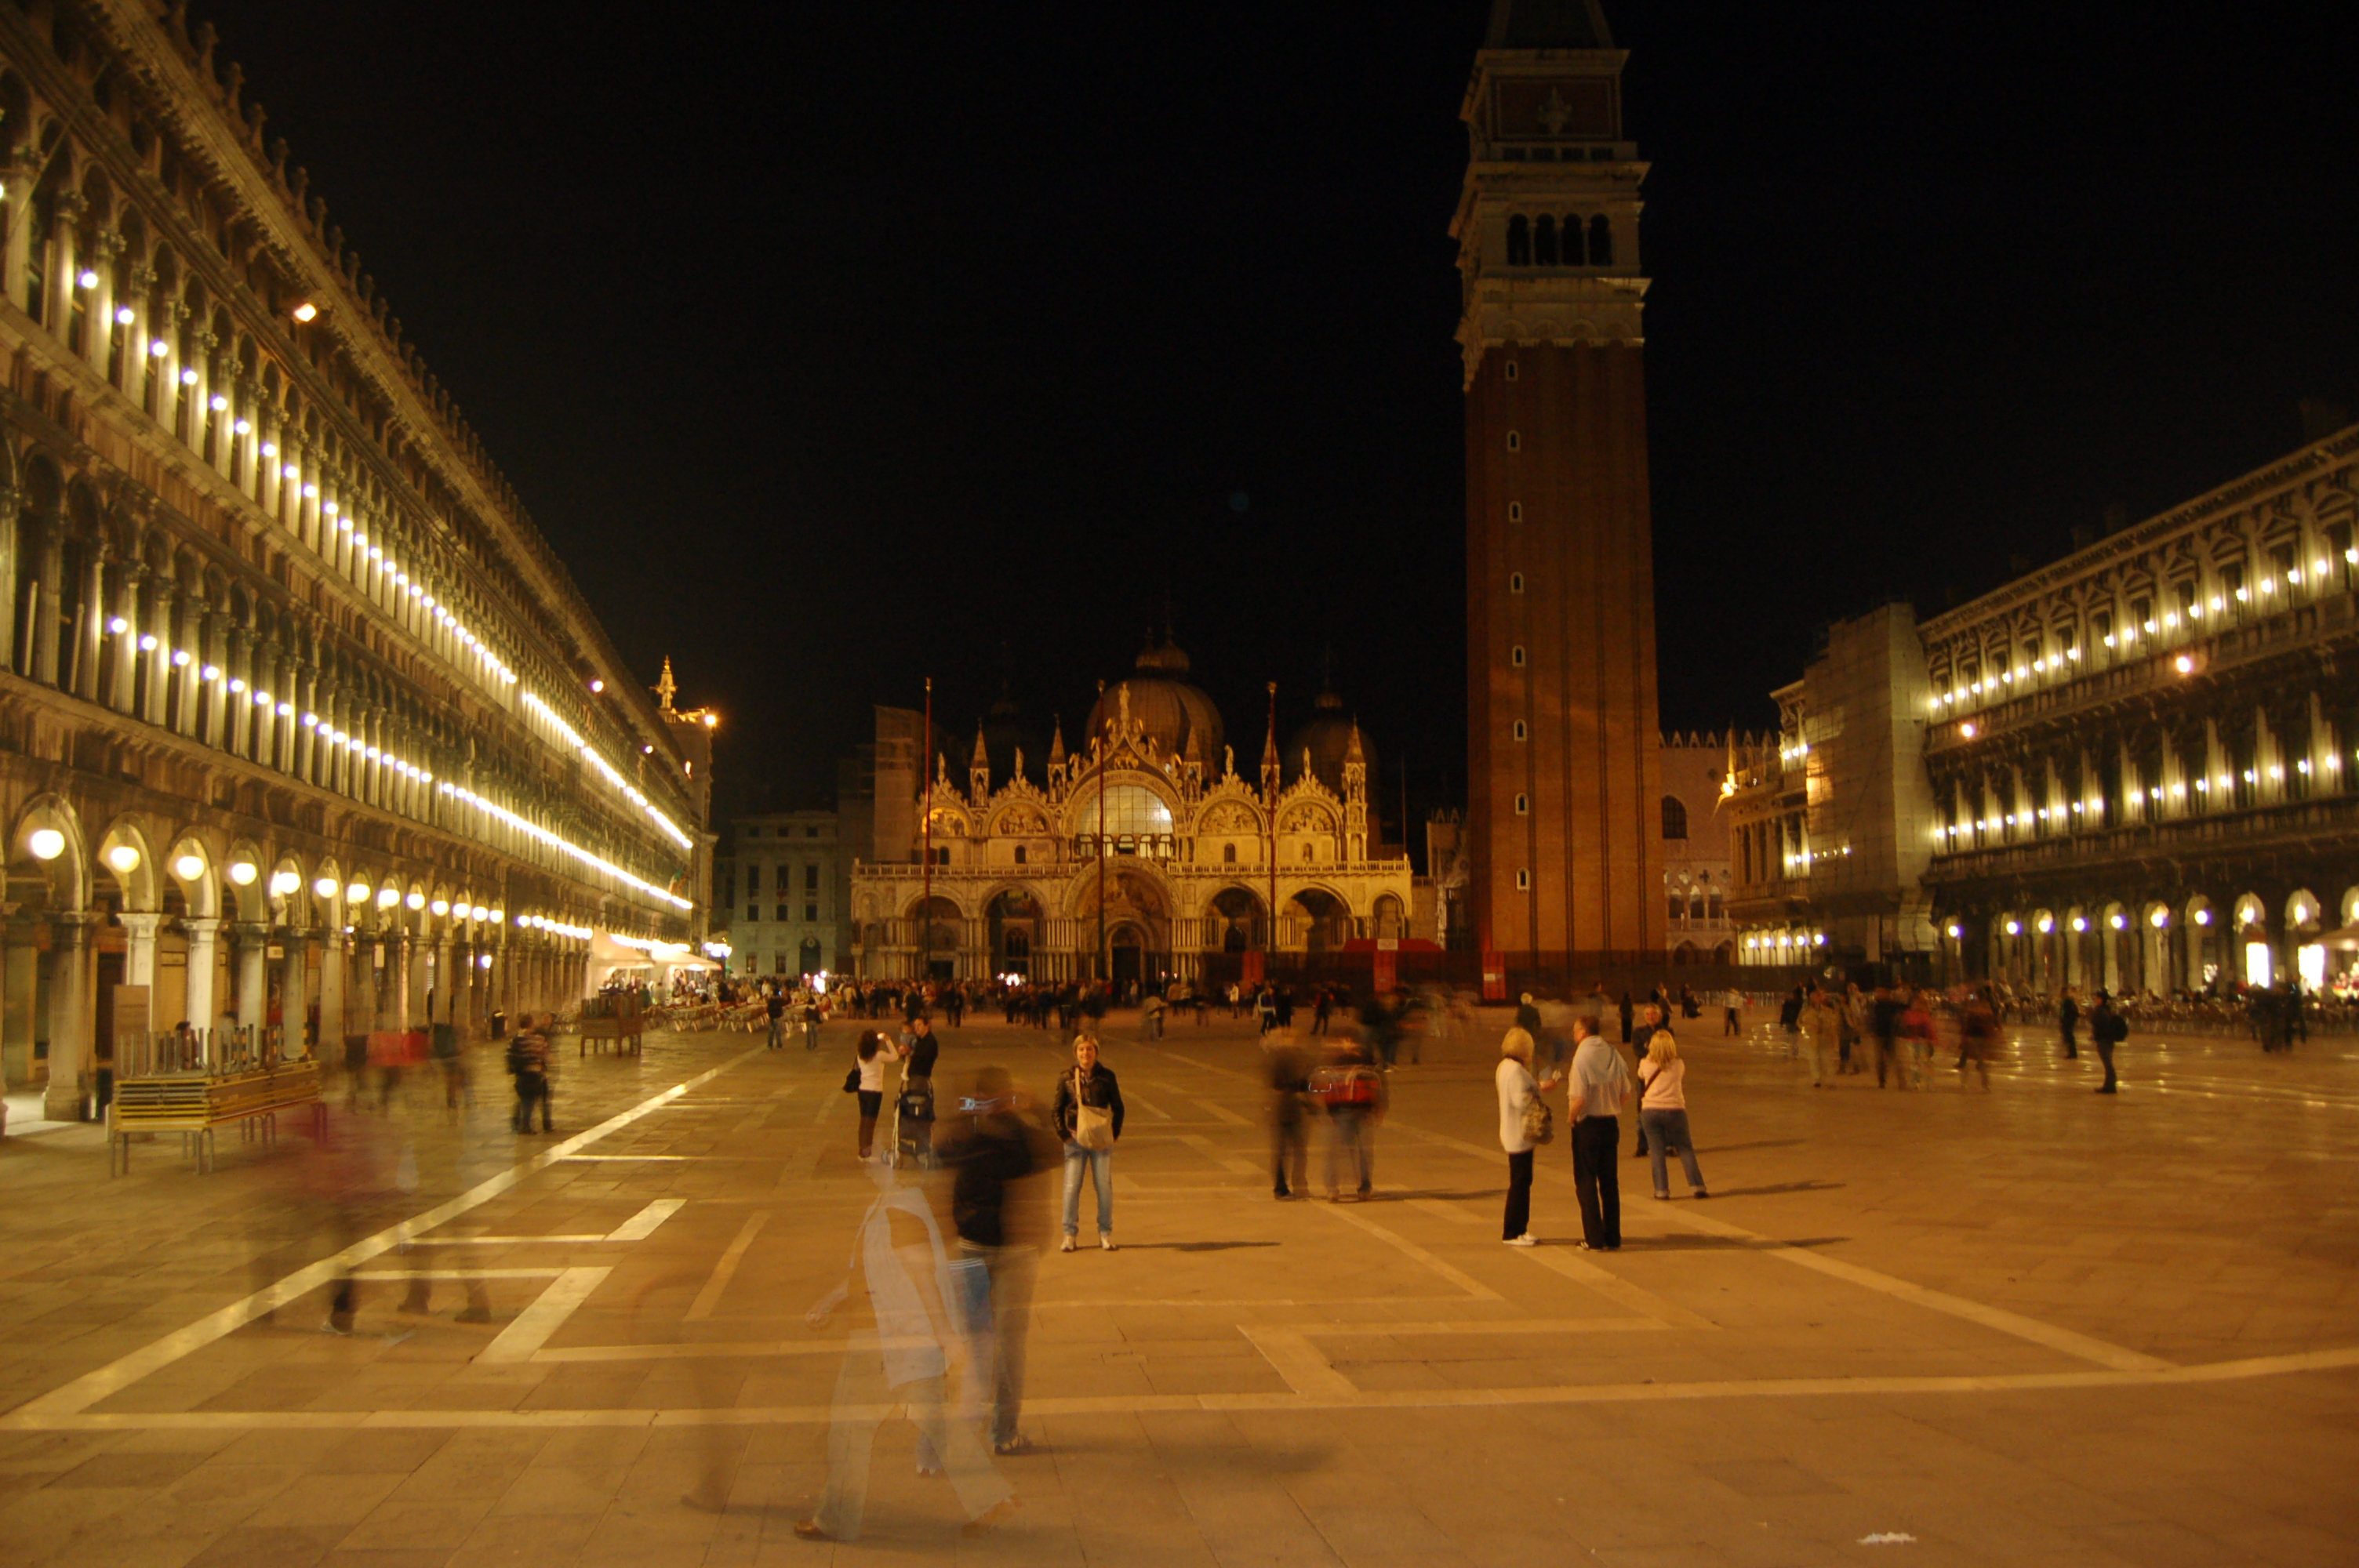 File:Evening @ Piazza San Marco (3500176423).jpg - Wikimedia Commons